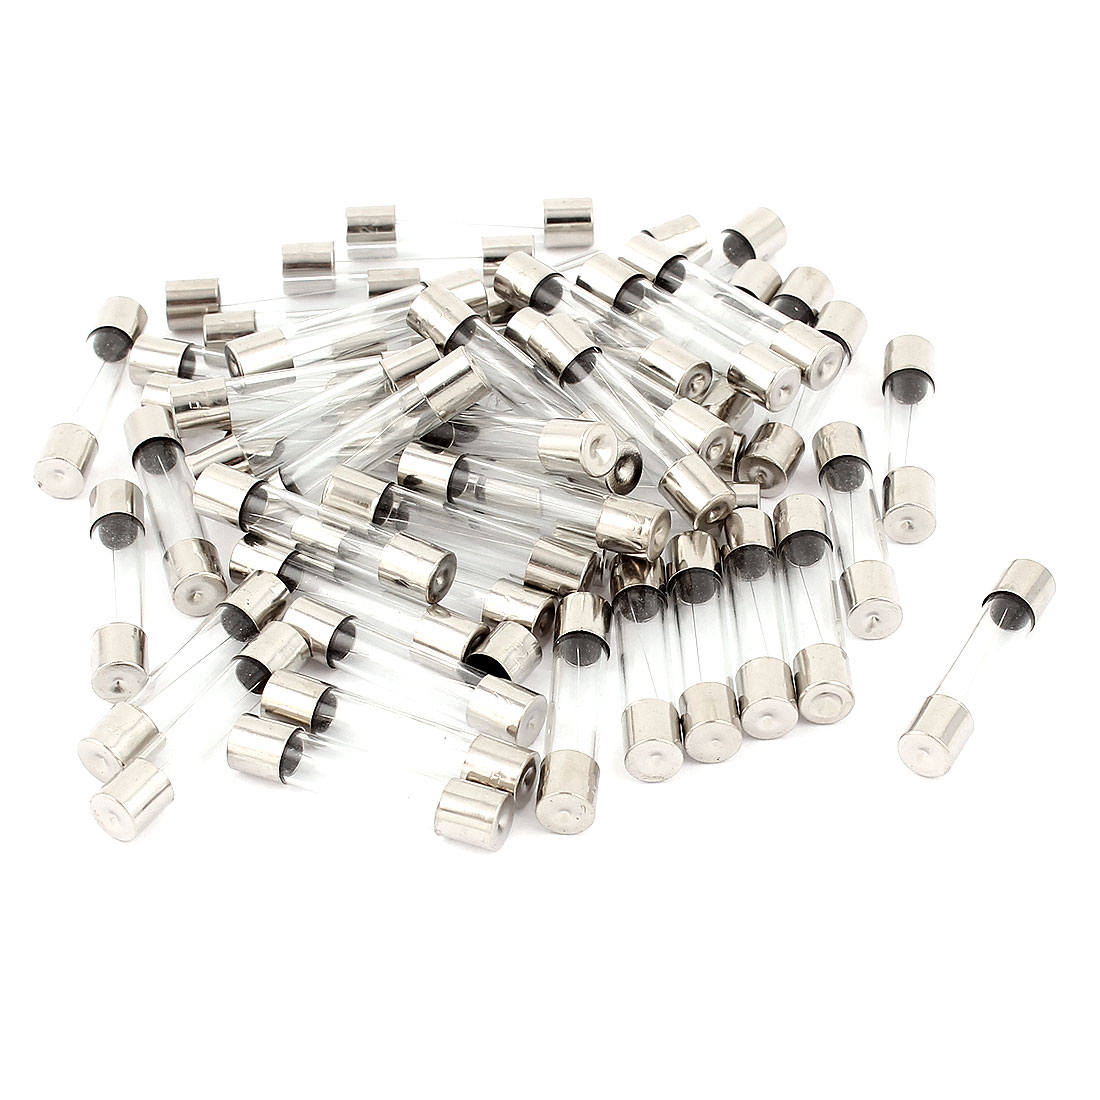 250V 5A F5AL250V Fast Quick Blow Glass Tube Fuses 6mm x 30mm 50 Pcs